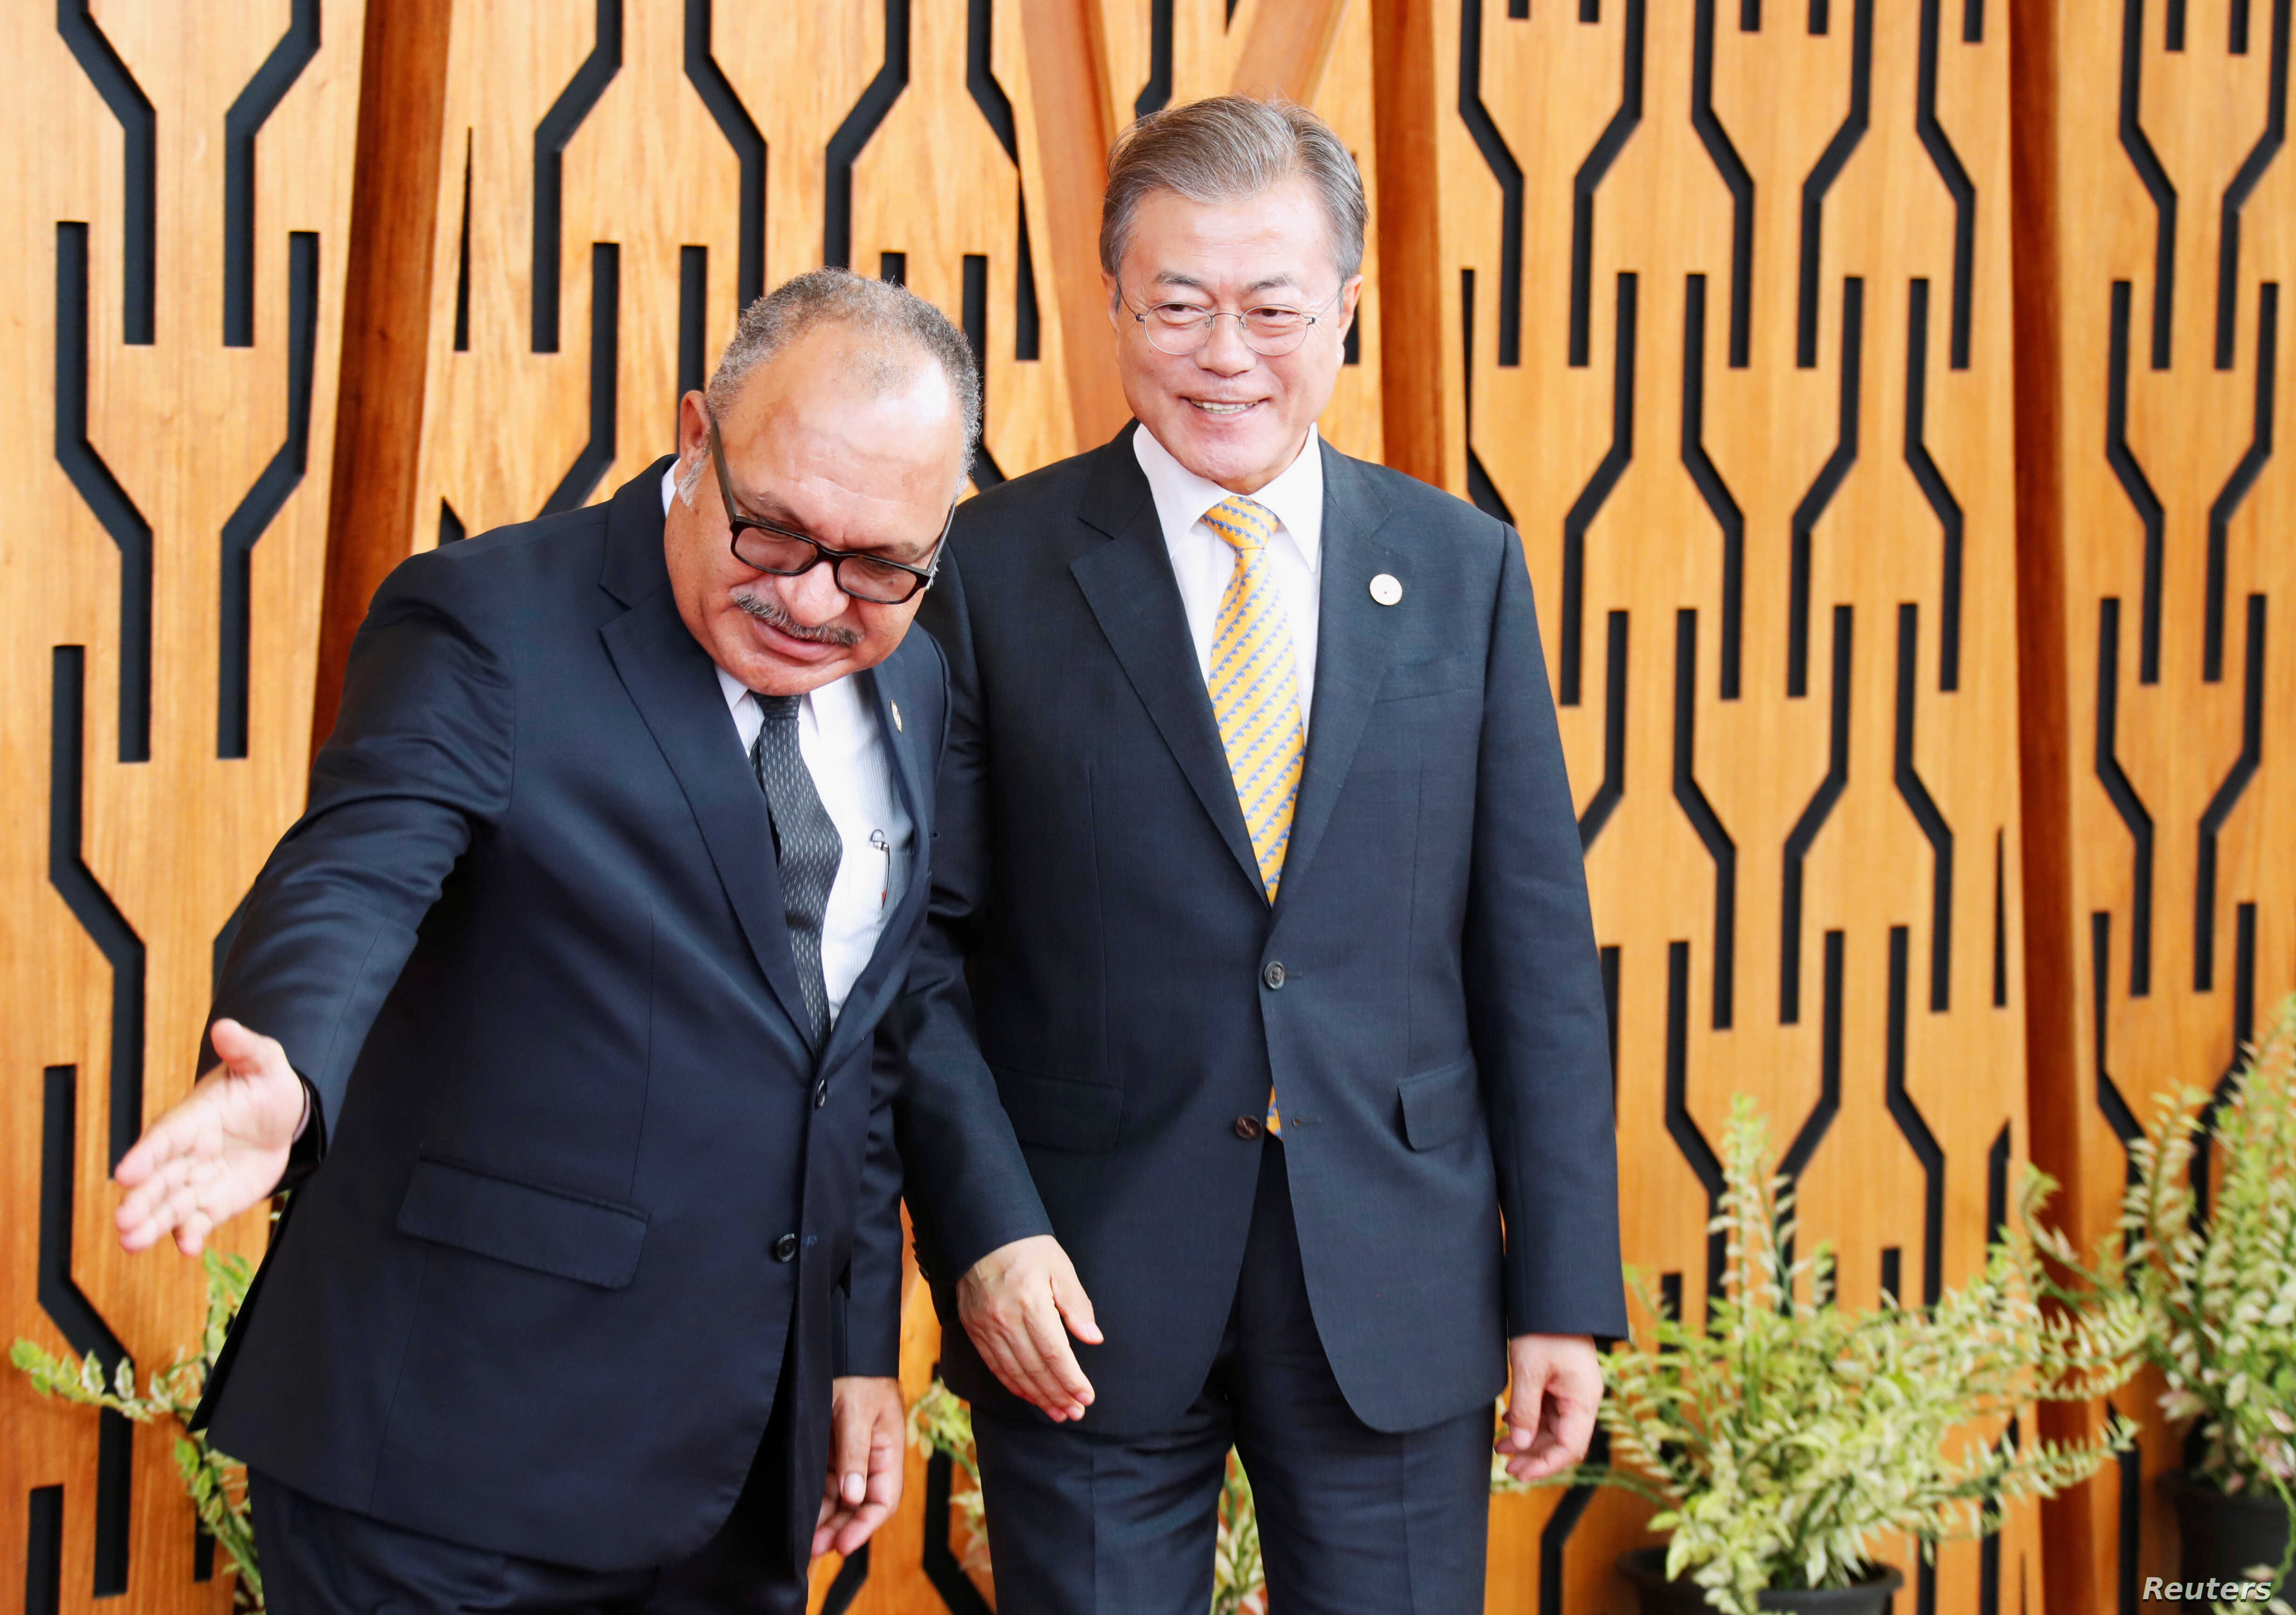 South Korea's President Moon Jae-in is shown the way by Papua New Guinea's Prime Minister Peter O'Neill as he arrives for the APEC Summit, Port Moresby, Papua New Guinea, Nov. 17, 2018. Moon is expected to discuss North Korea sanctions with Chinese P...